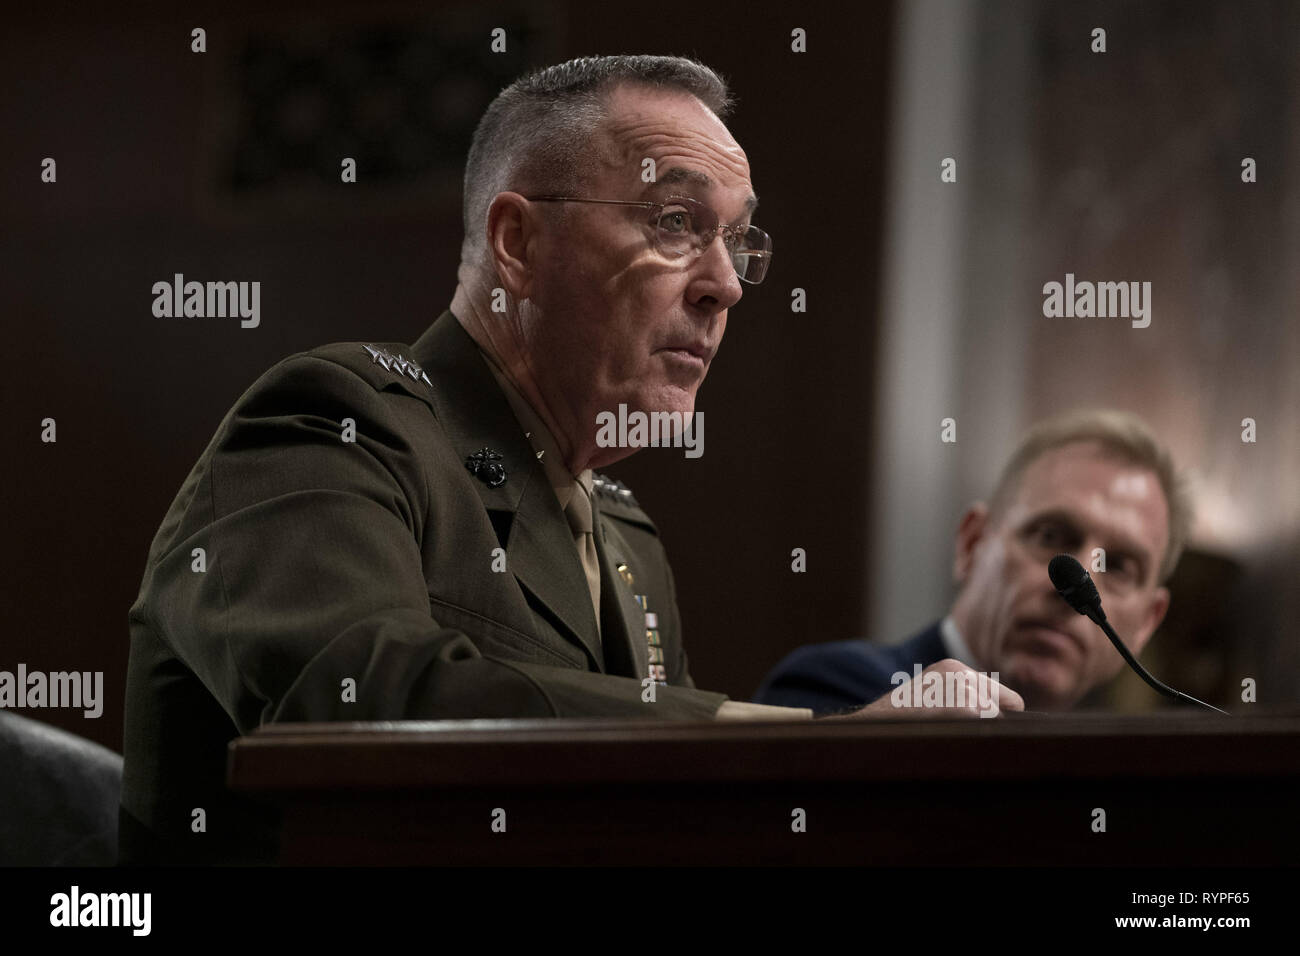 Washington, District of Columbia, USA. 14th Mar, 2019. General JOSEPH F. DUNFORD, Jr., USMC, Chairman Of The Joint Chiefs Of Staff, testifies before the Senate Armed Services Committee Hearing: Department of Defense Budget Posture Credit: Douglas Christian/ZUMA Wire/Alamy Live News Stock Photo